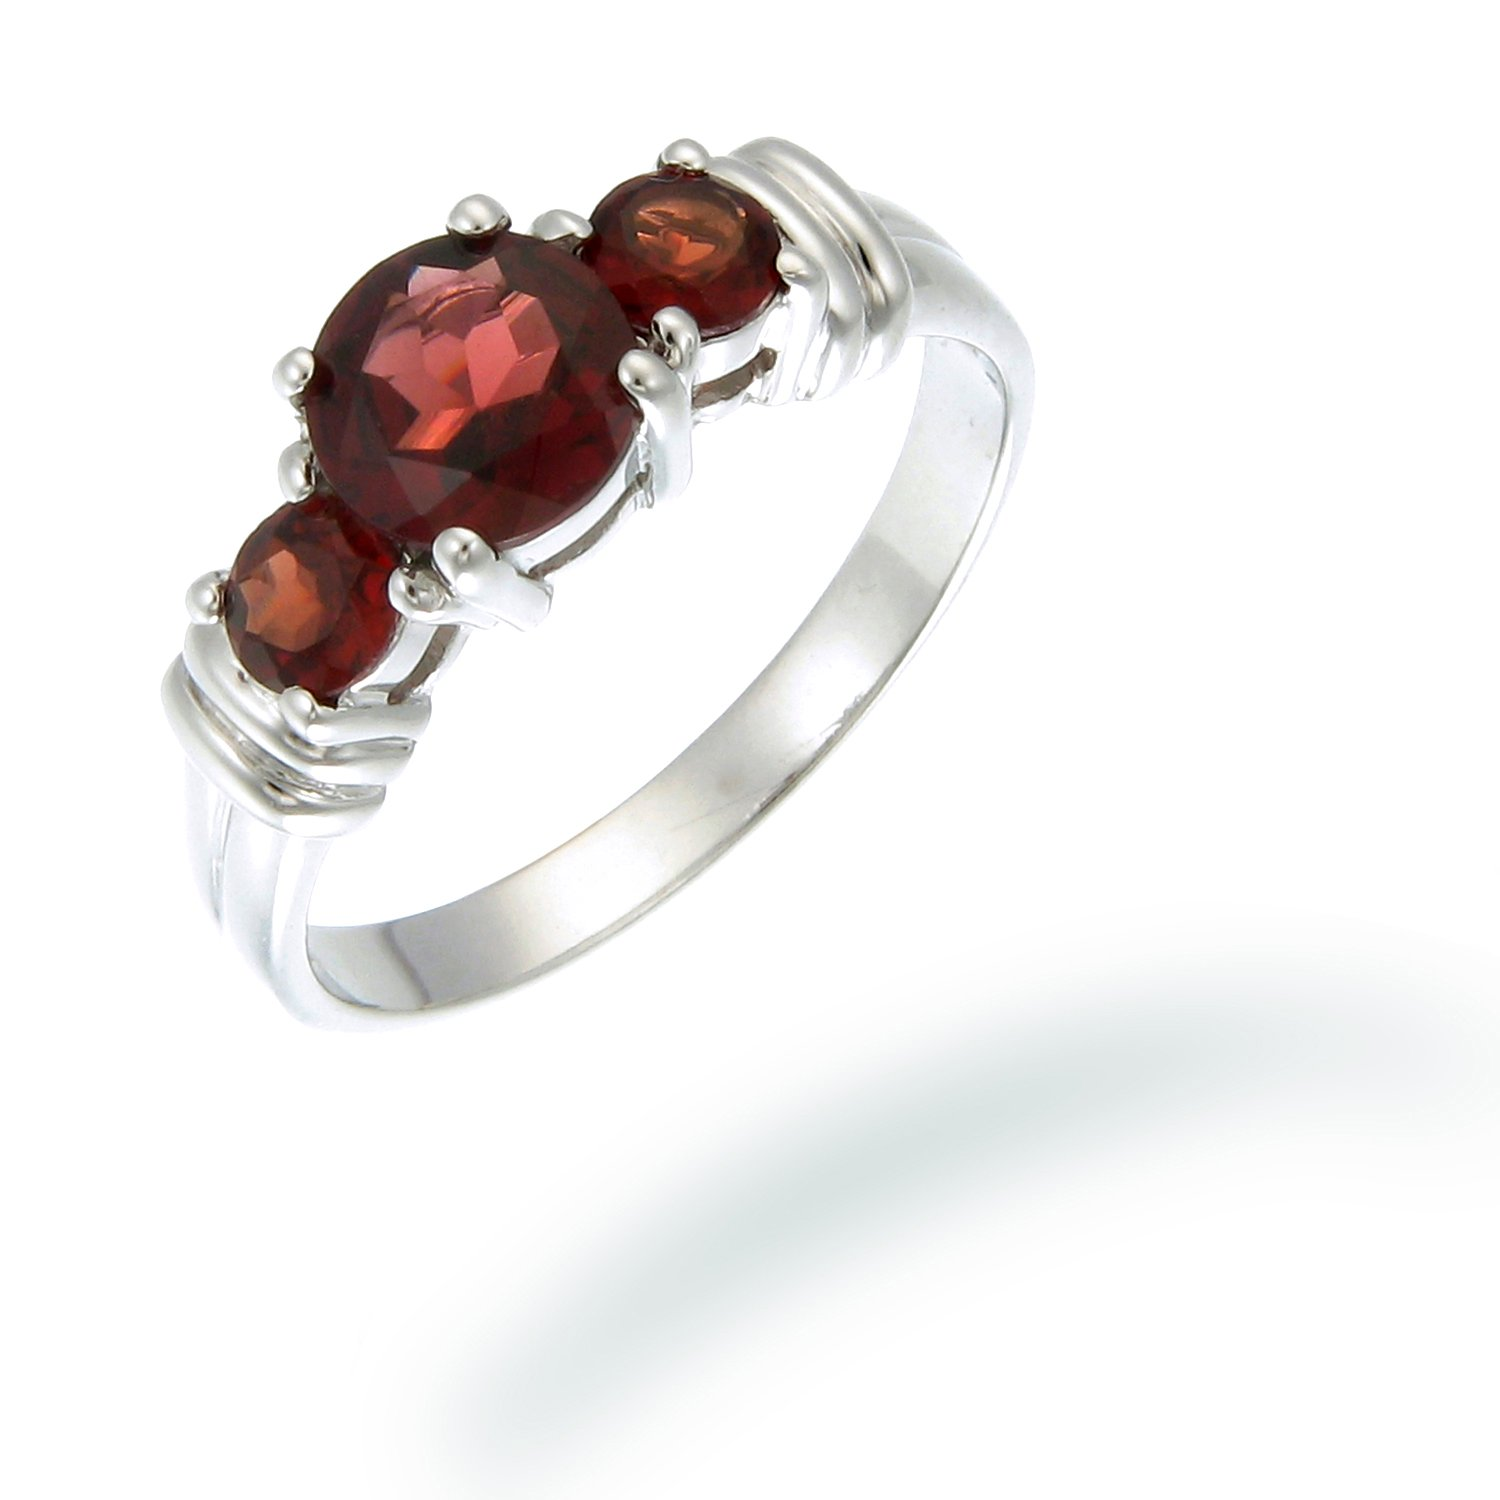 d7dcea8425c80 3 Stone 6 MM 1.20 CT Garnet Ring Sterling Silver